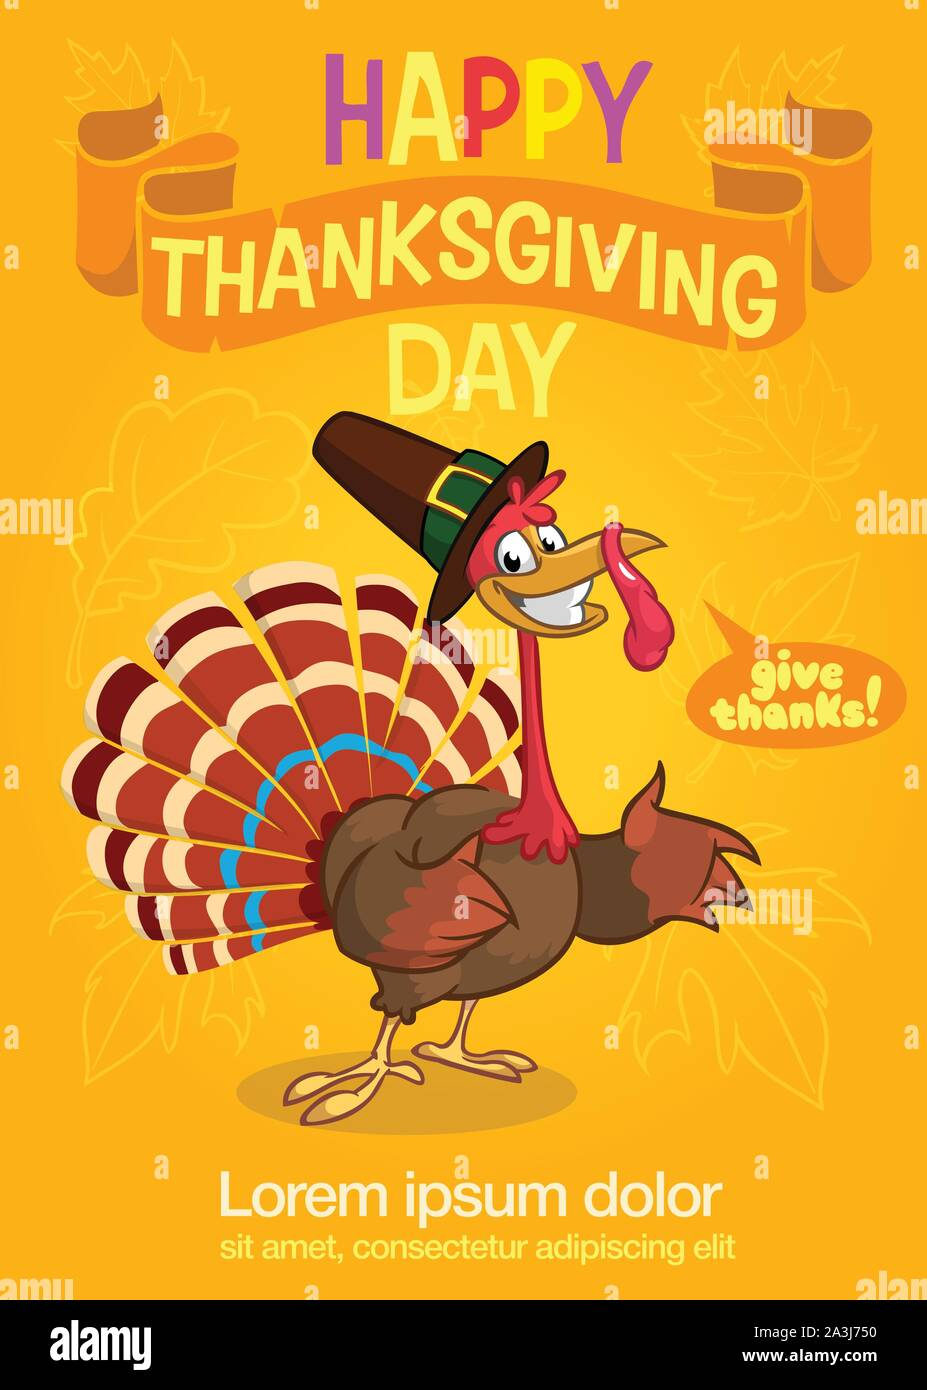 Turkey Bird Cartoon Character Waving With Speech Bubble And Text. Vector Illustration for Party Invitation Stock Vector